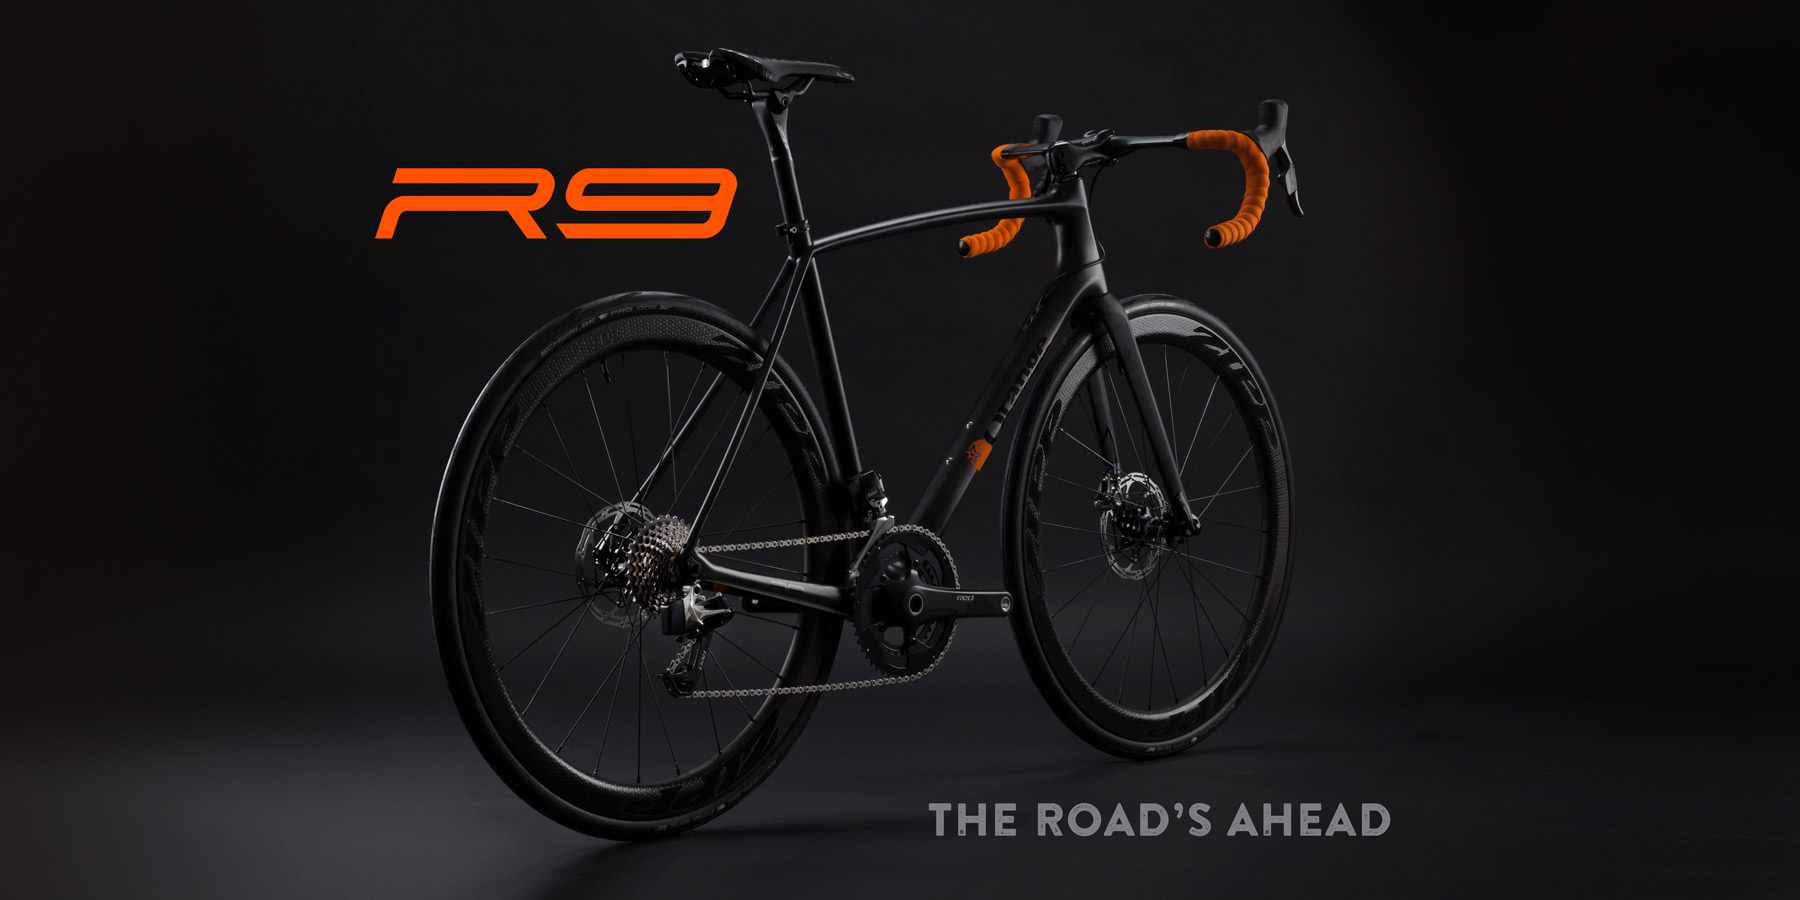 The Orange R9 - The road's ahead